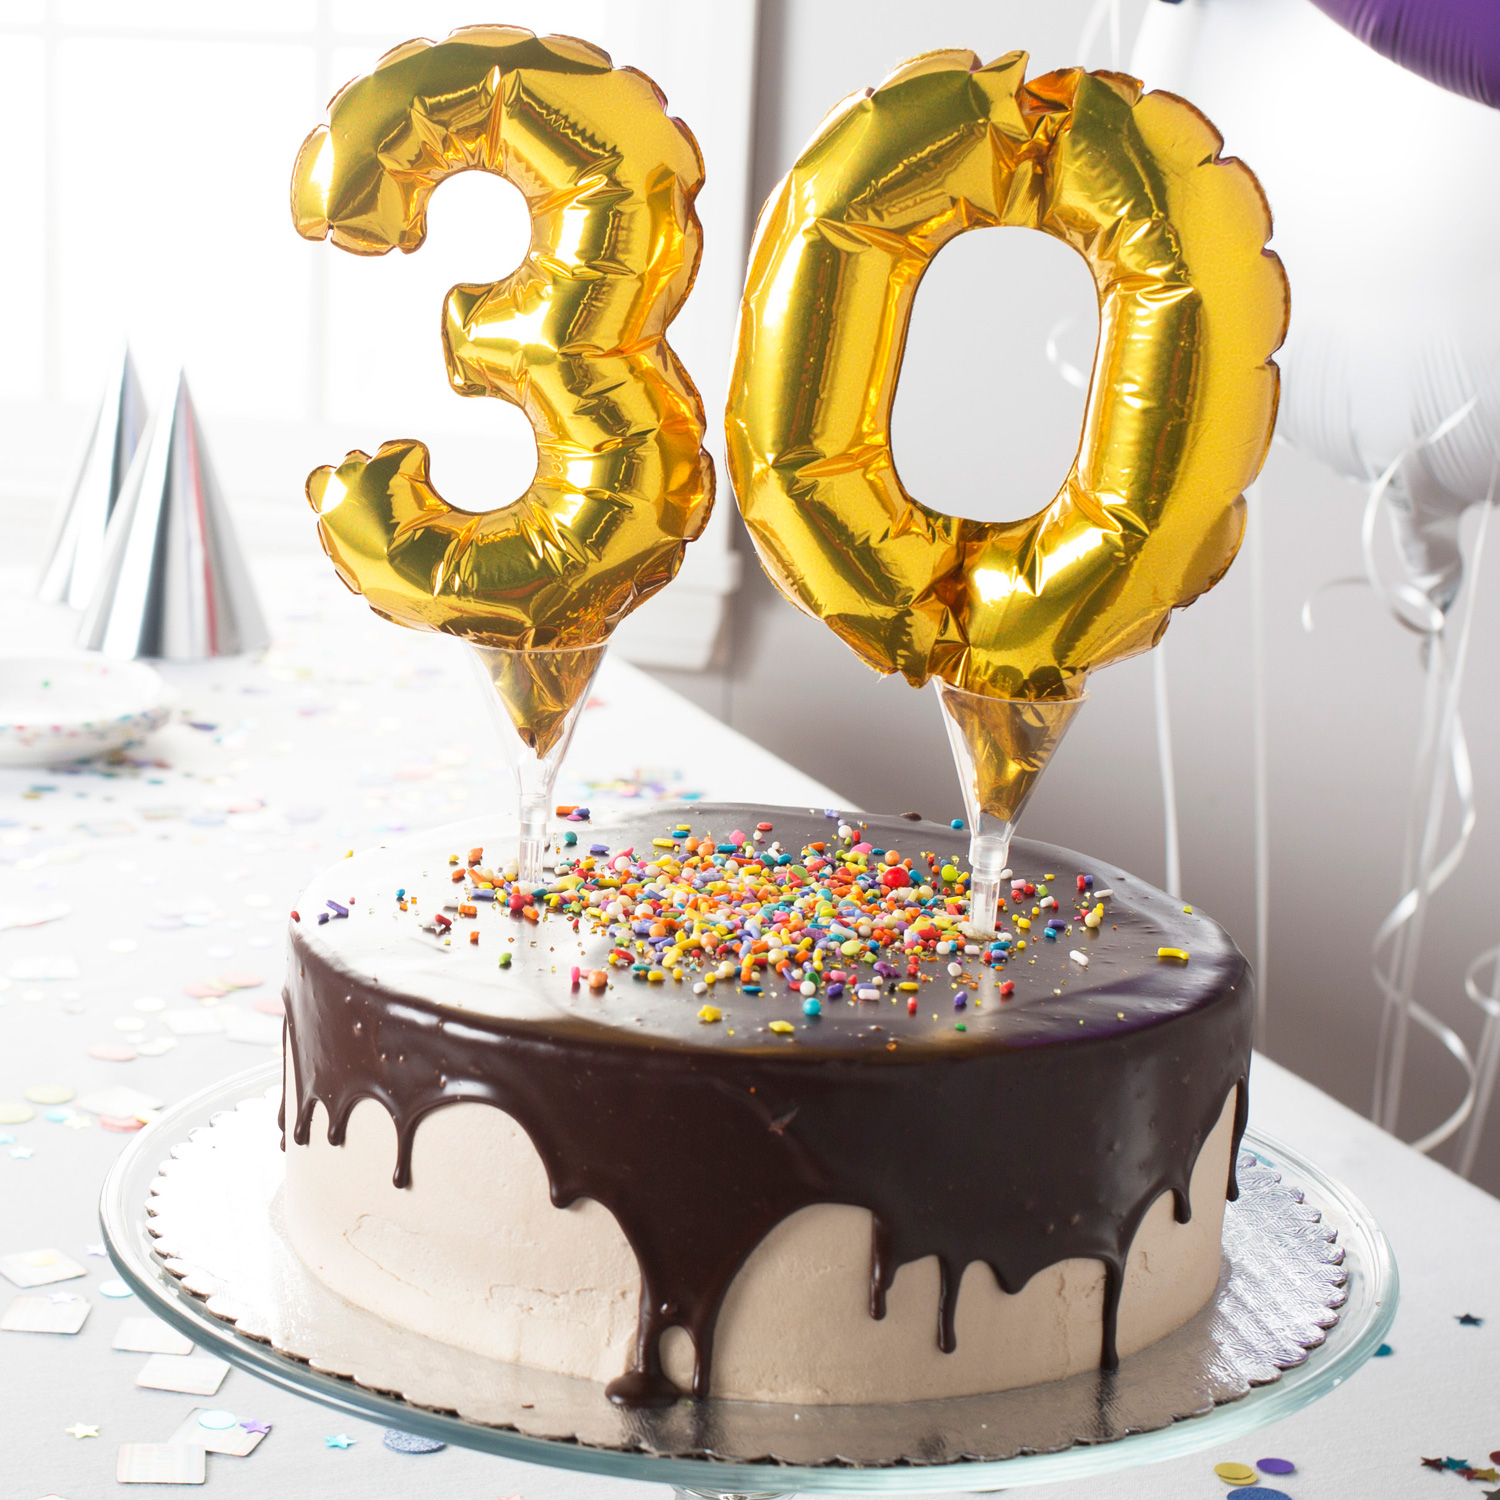 Gold Micro Number 0 Foil Balloon Cake Picks 6 15cm A04